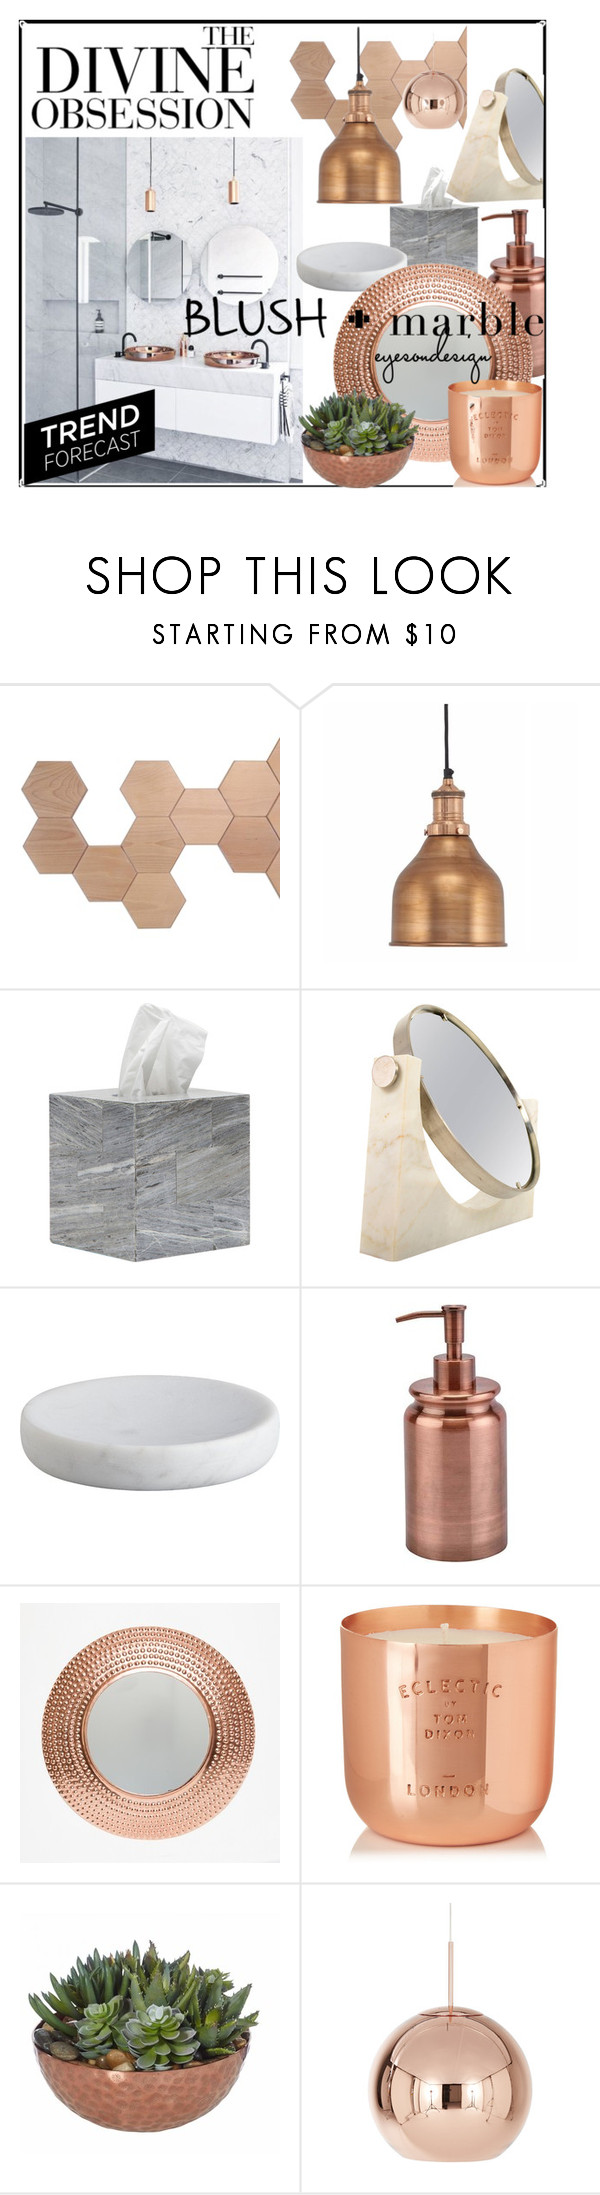 """marble + blush bathroom"" by zerinafe ❤ liked on Polyvore featuring interior, interiors, interior design, home, home decor, interior decorating, Vera Wang, Pigeon & Poodle, CB2 and Aquanova"